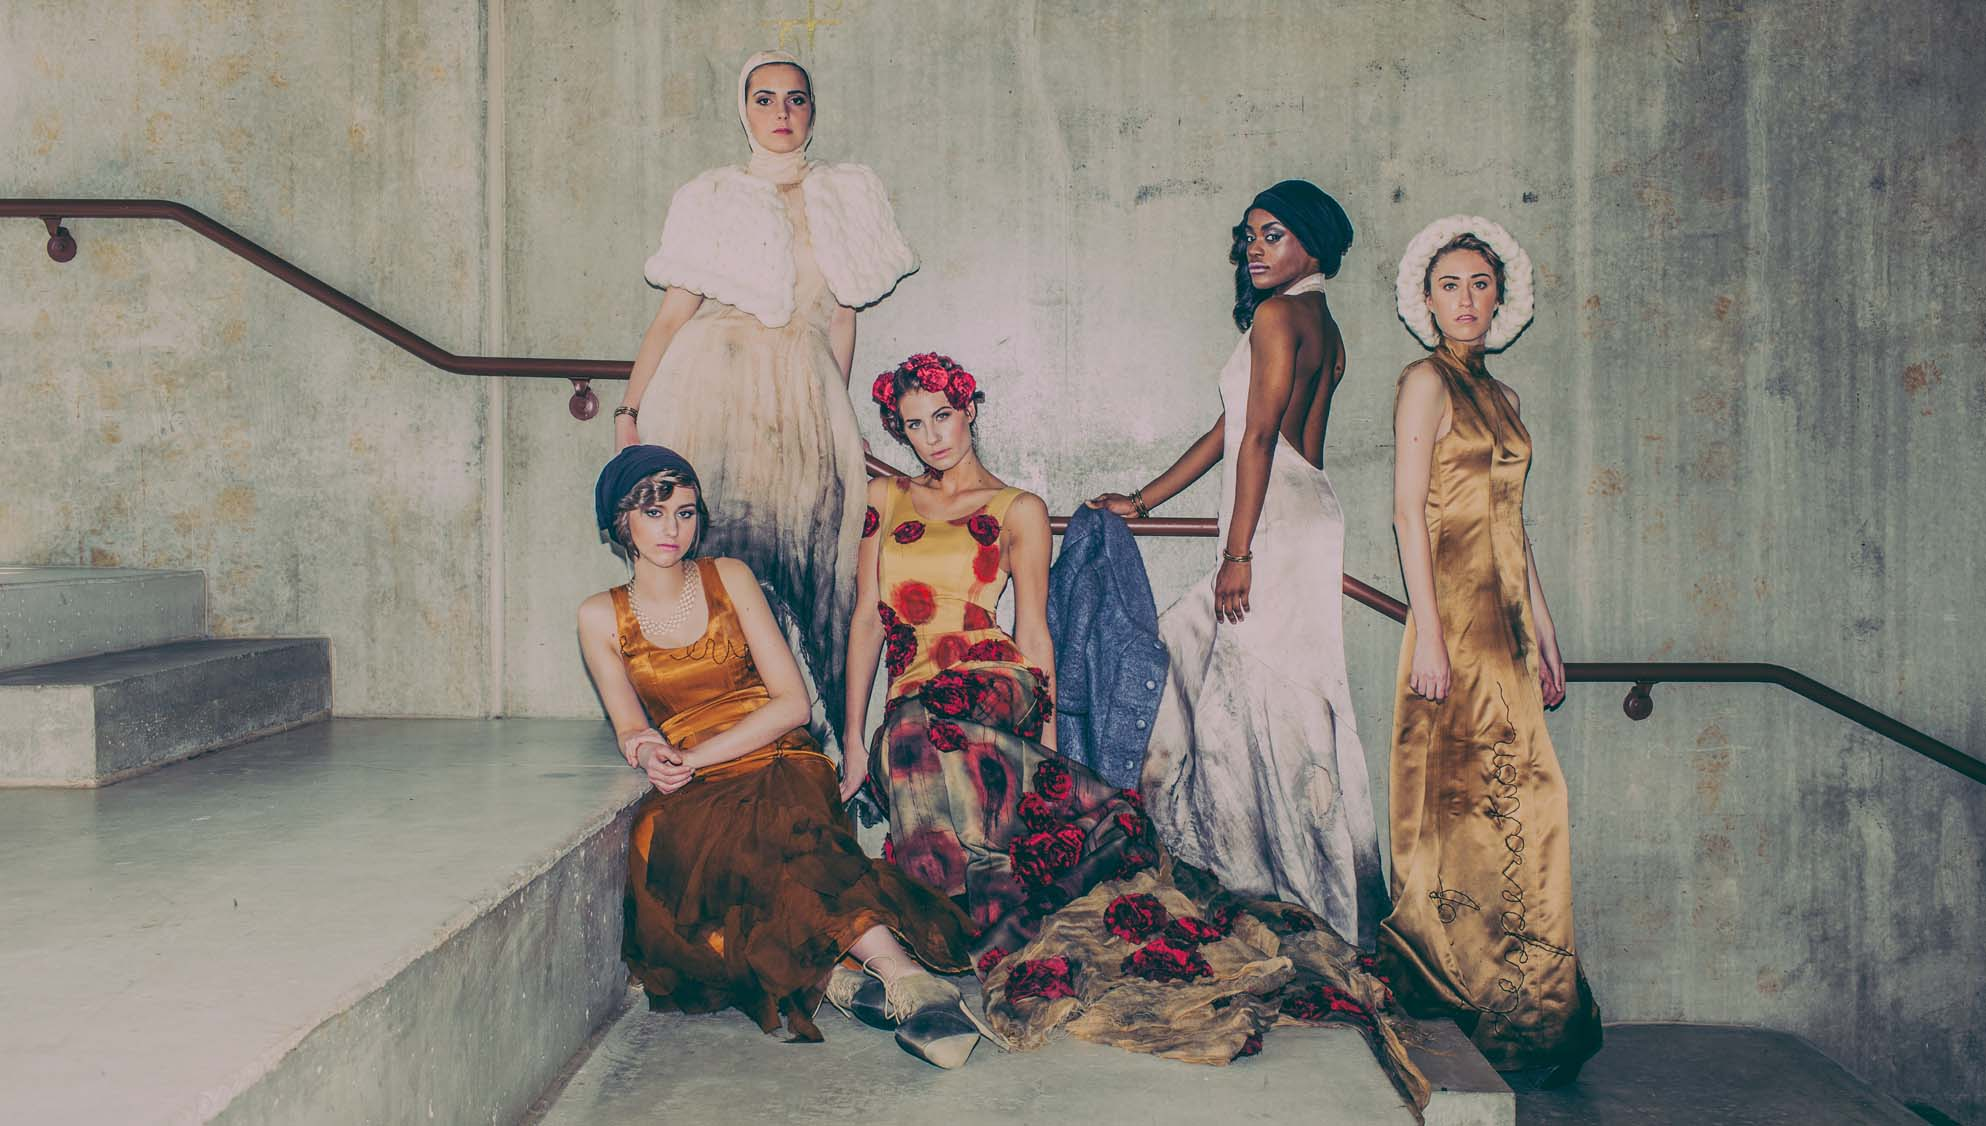 Photographer: Nick Fancher Models (L to R): Hannah Burns, Gabriella Giglio, Jess Hess, Brianna Herring, Lauren Metelitz